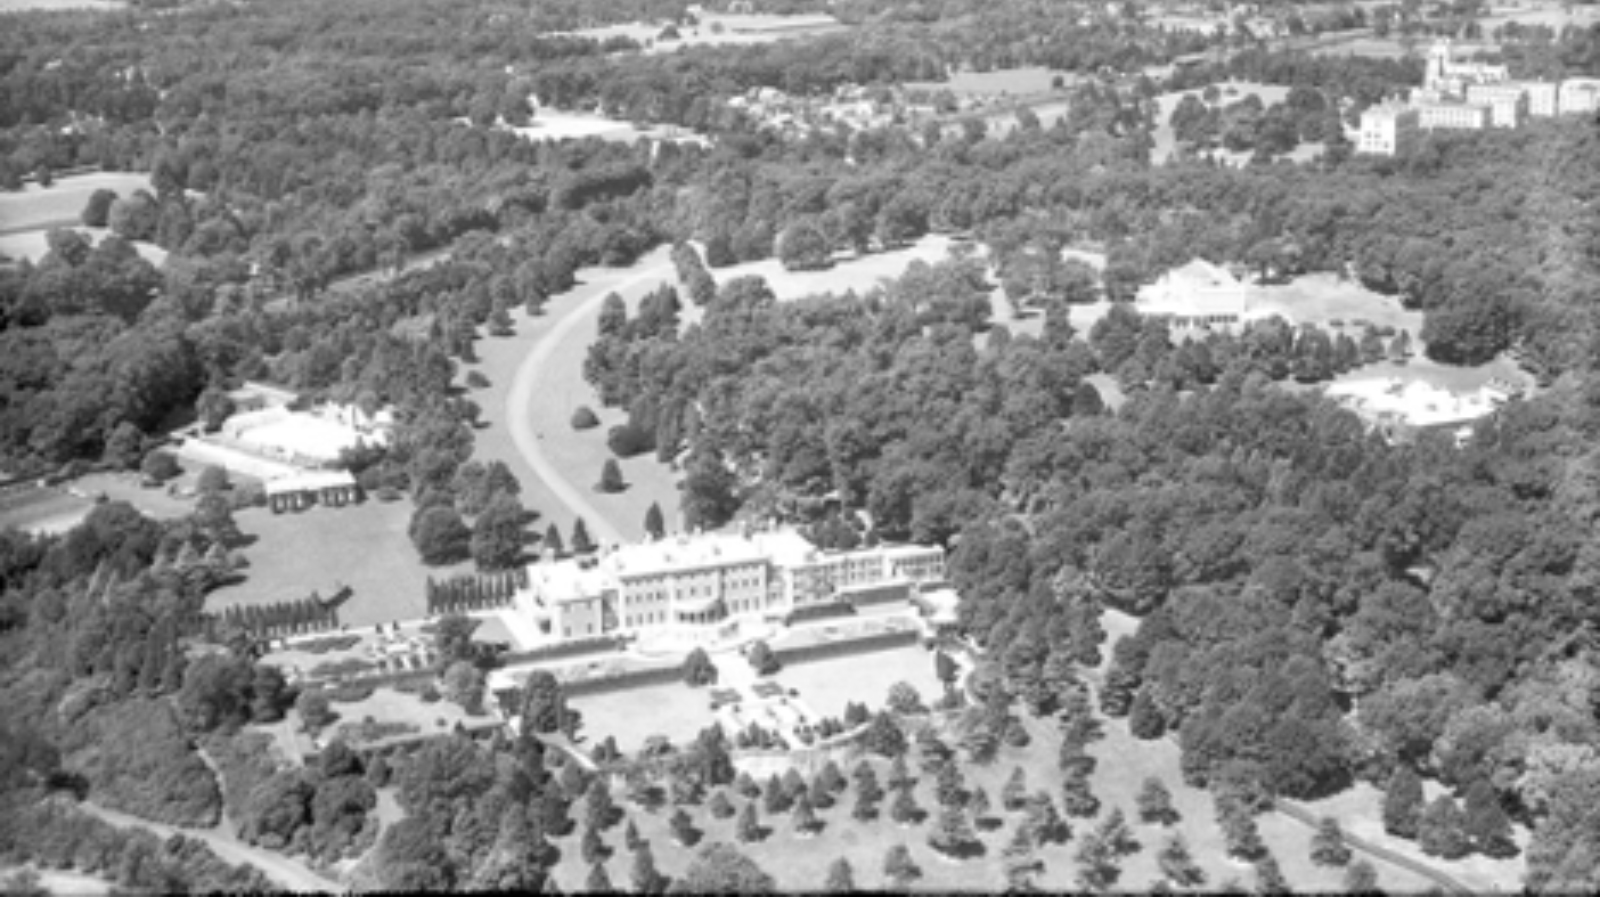 Aerial view of the Florham Estate in the early 20th century